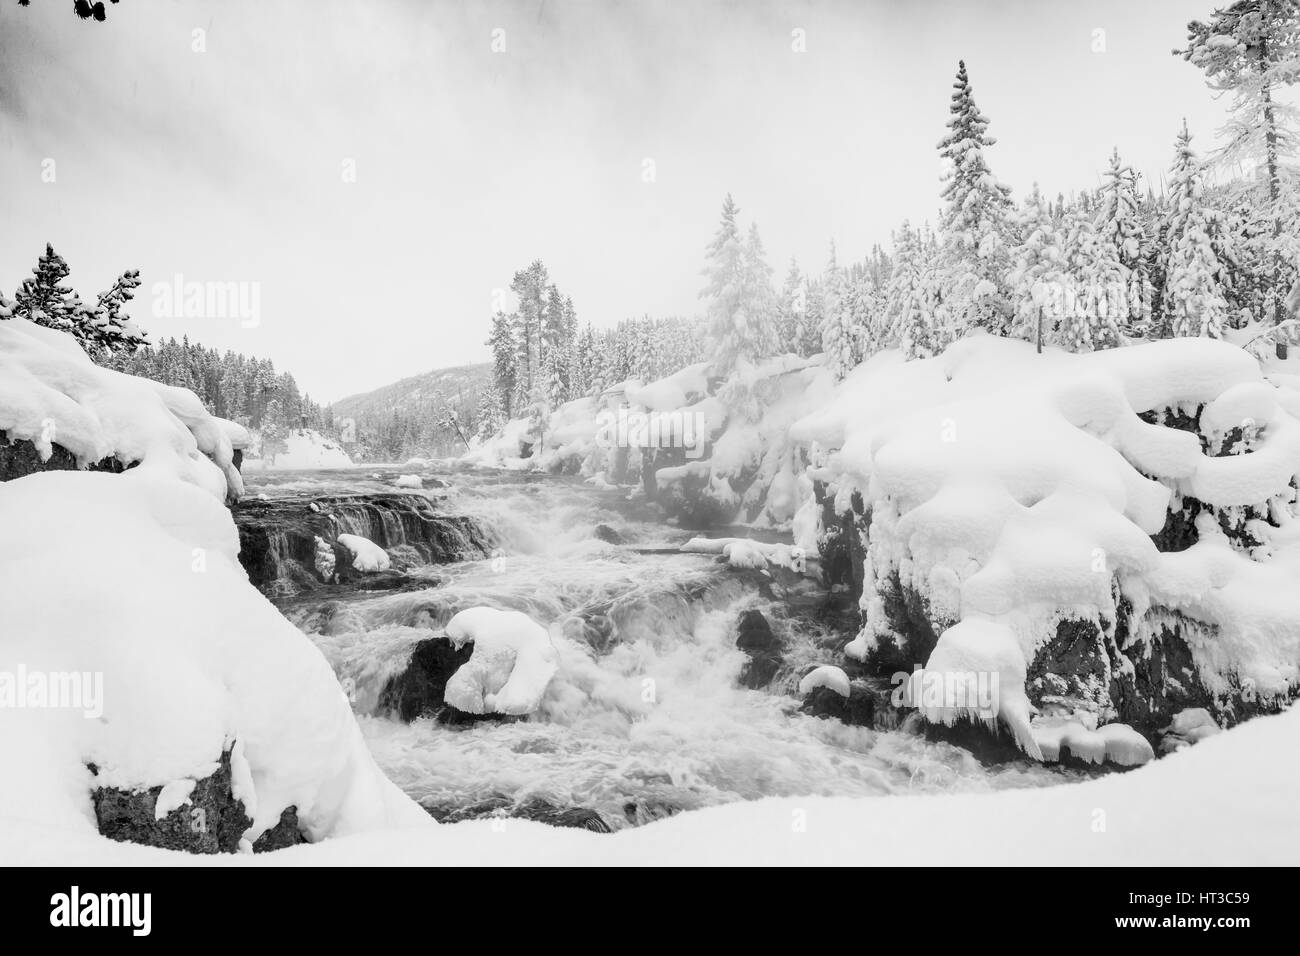 Beautiful snowy scenic landscape of a flowing river in Yellowstone National Park with snowy trees, rocks, and rapids. - Stock Image